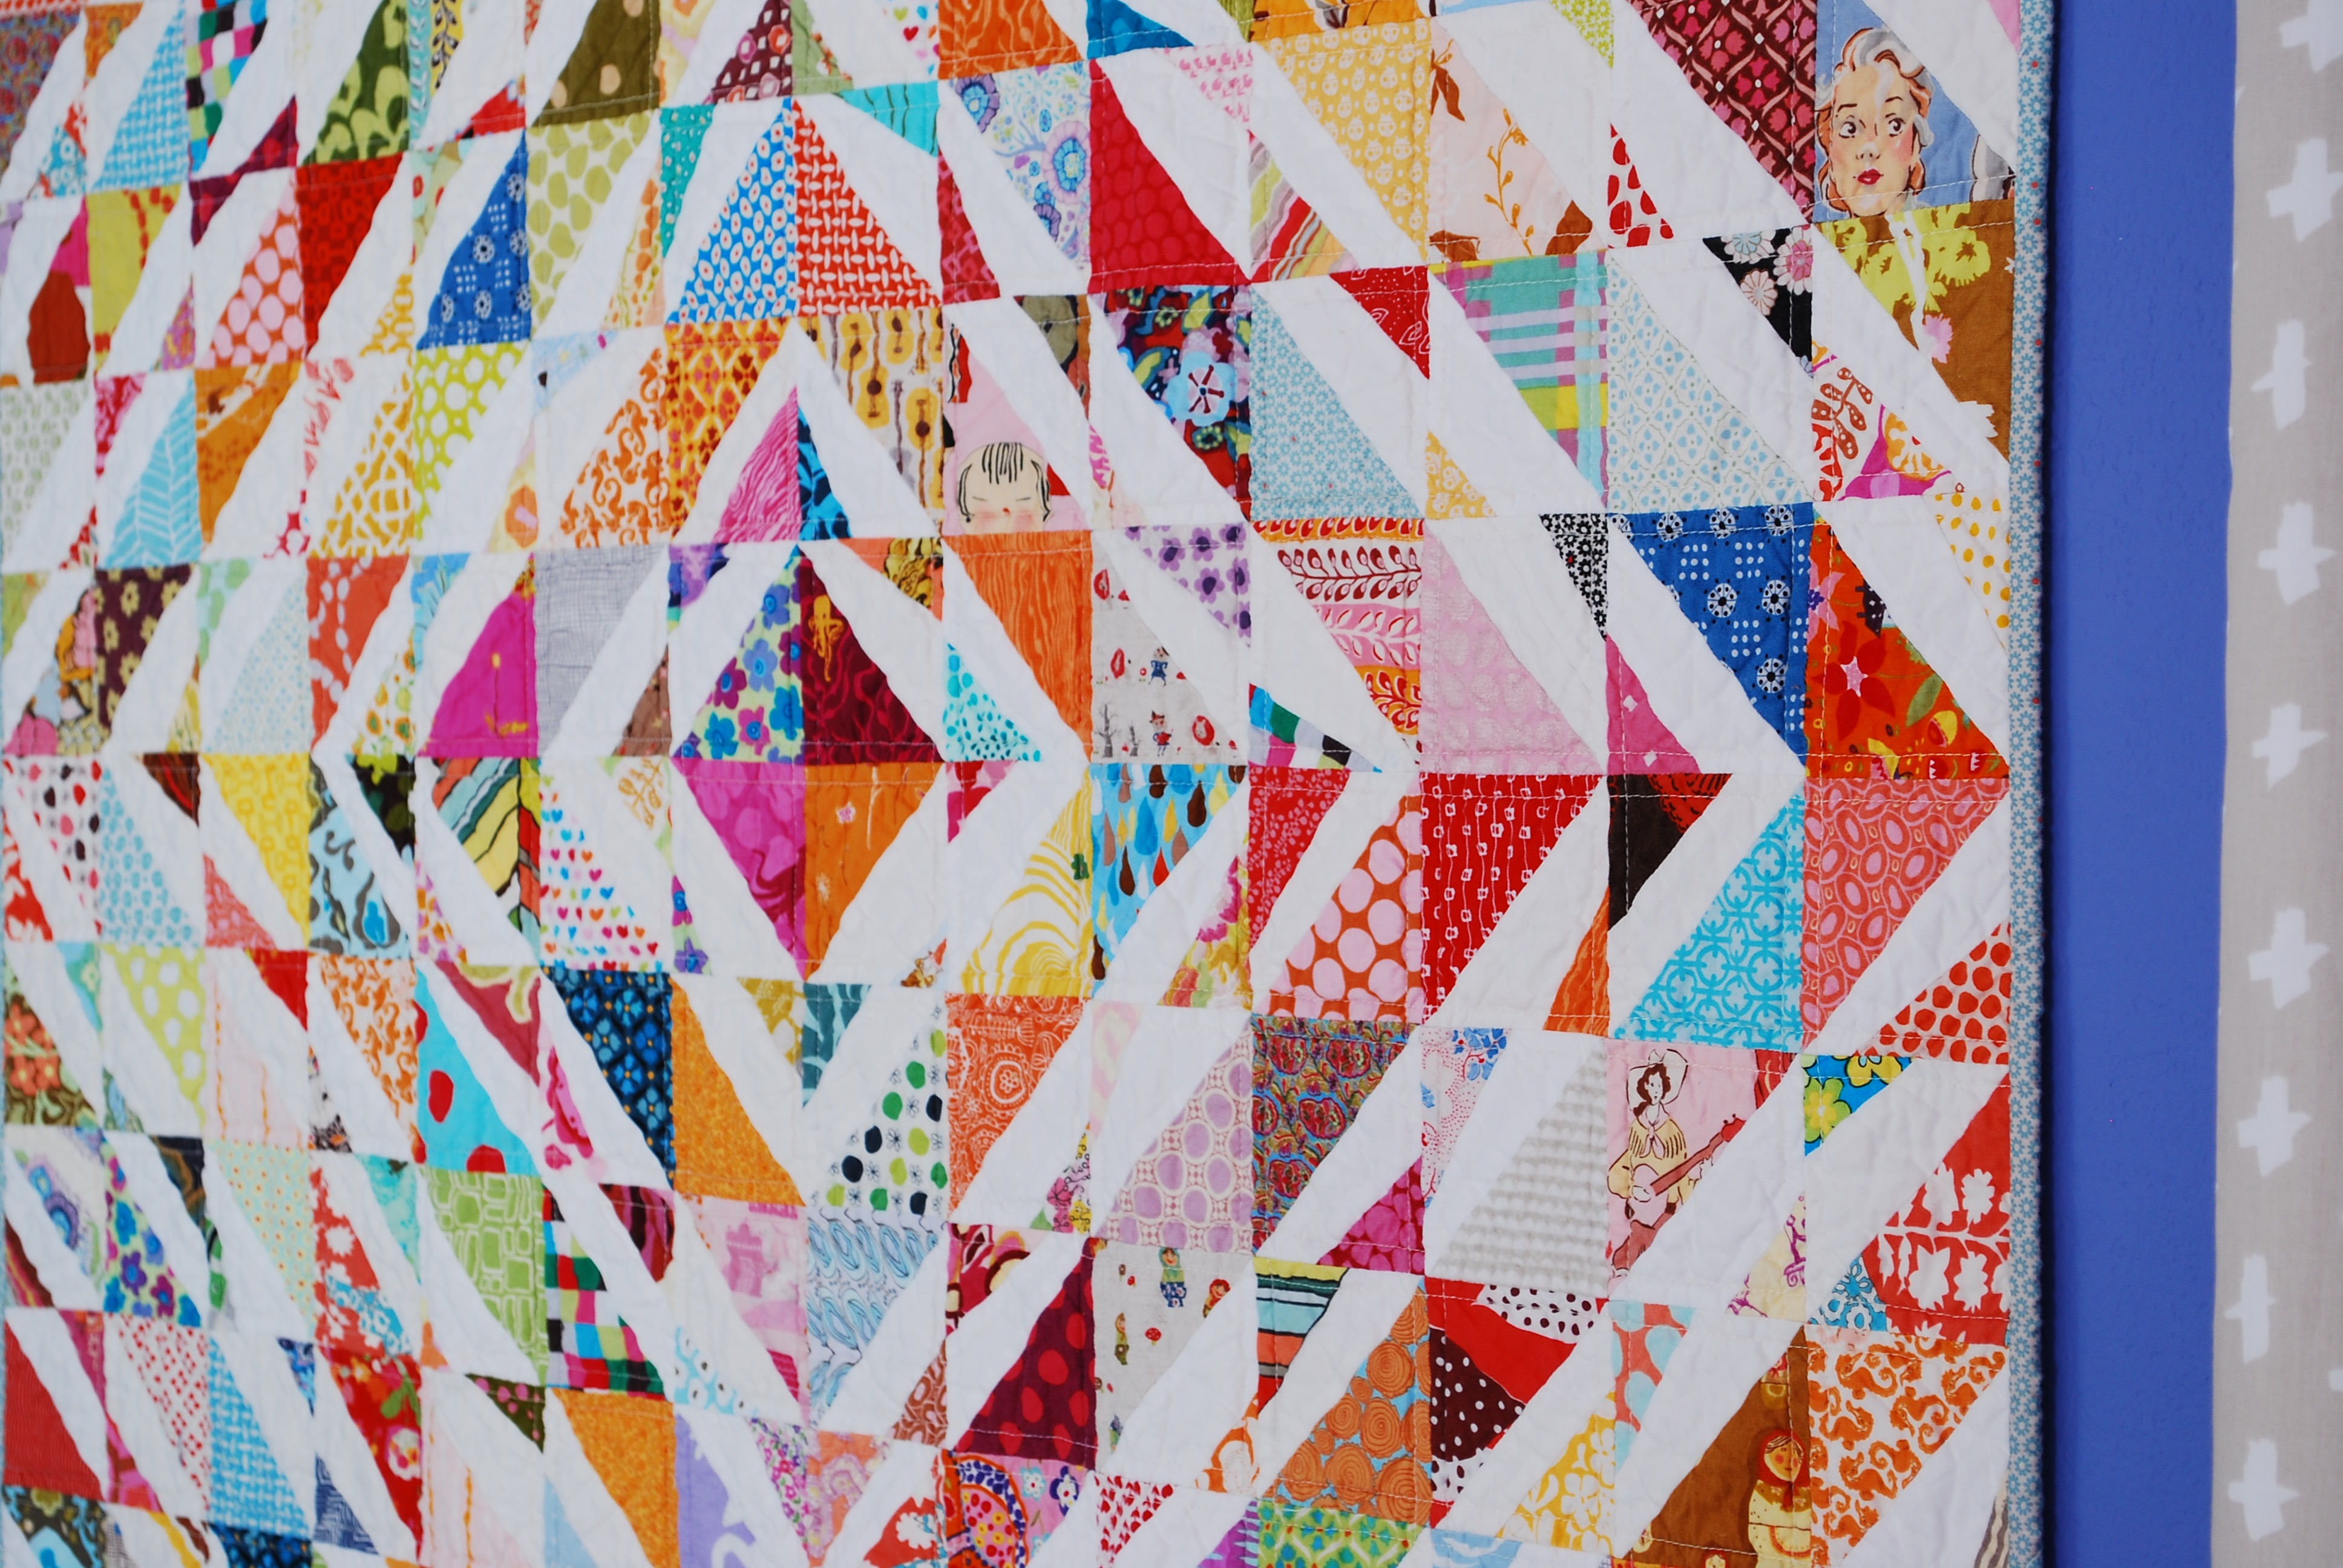 sew katie did | Seattle Modern Quilting Workshops and Sewing Studio | Double-Trouble Quilt